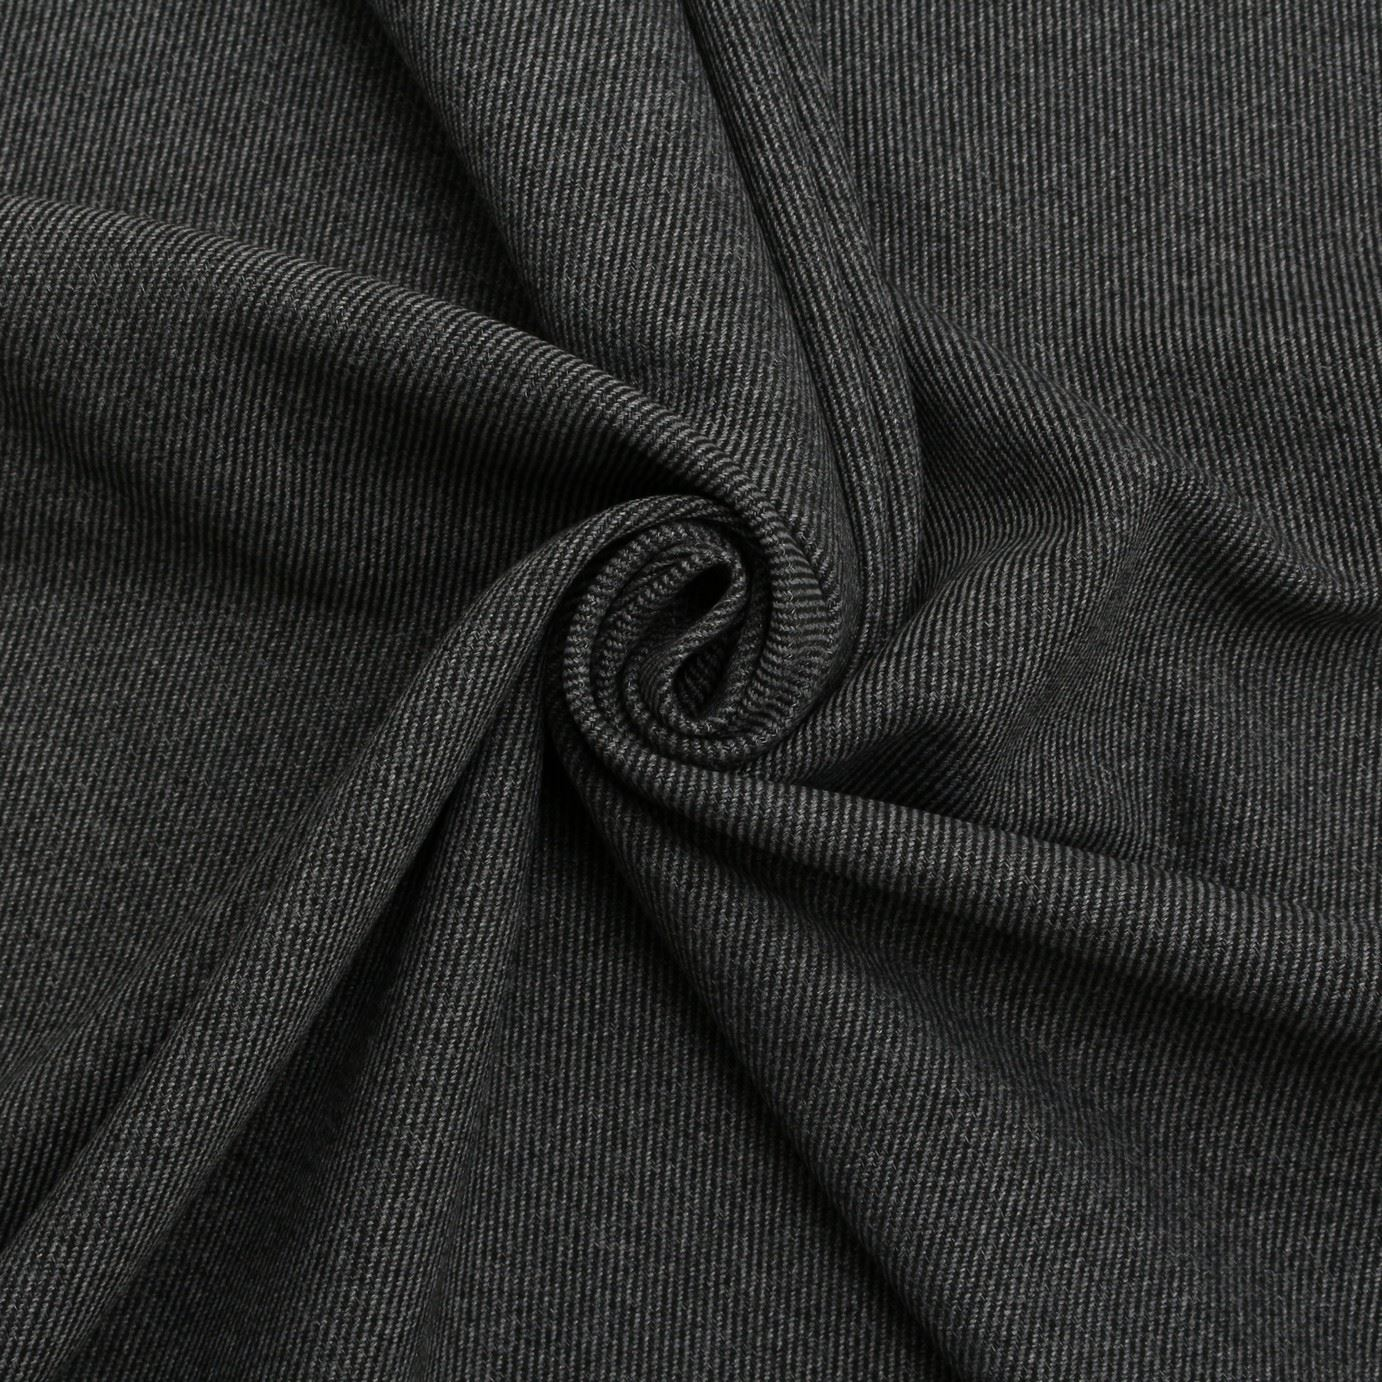 thumbnail 3 - TRADITIONAL TWILL WEAVE SOFT PLAIN FURNISHING COTTON FAUX WOOL UPHOLSTERY FABRIC